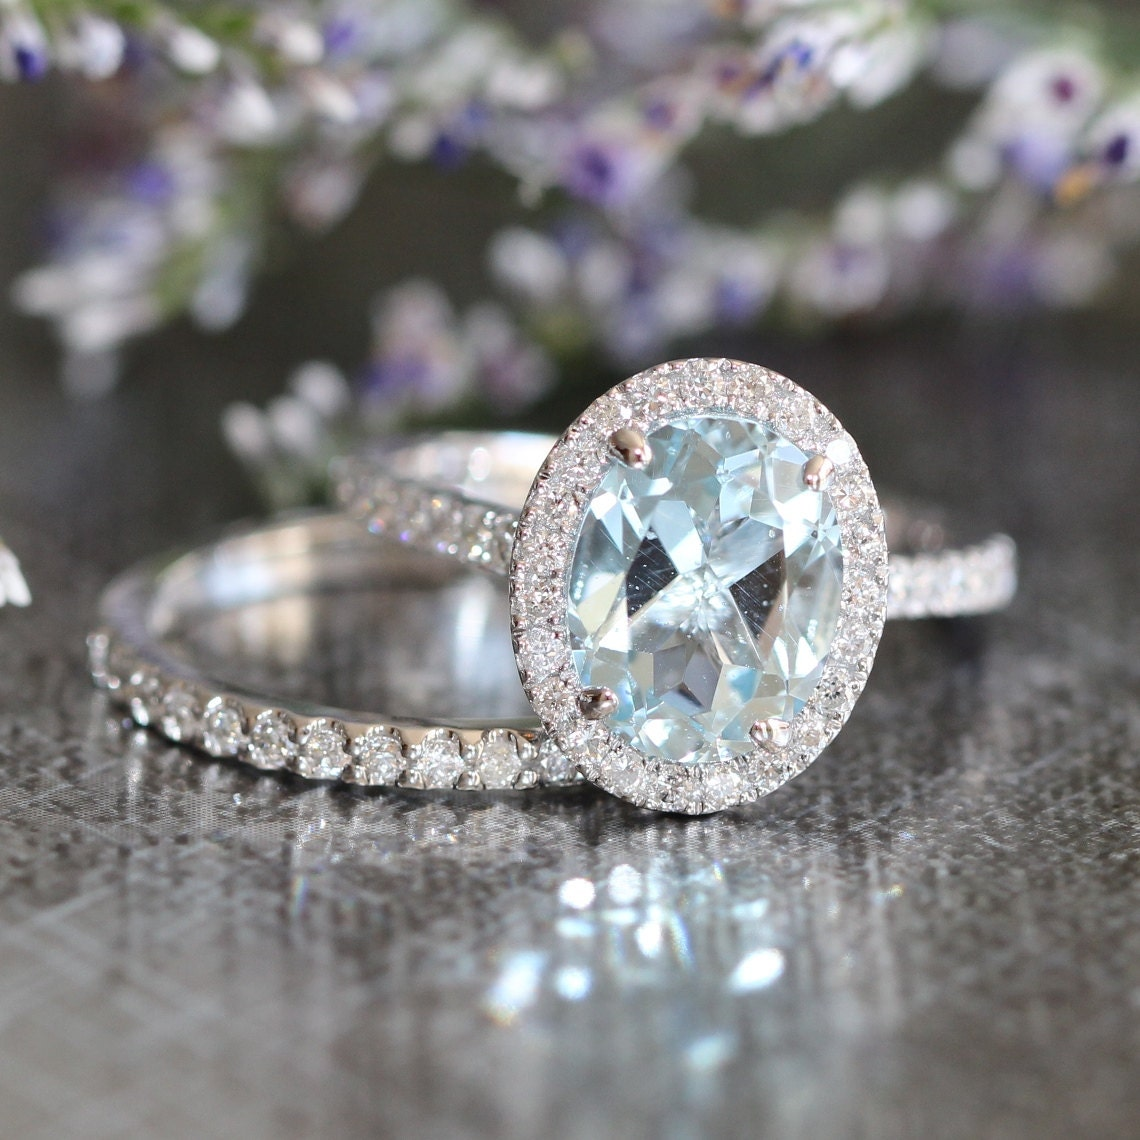 halo wedding ring set aquamarine engagement ring and half. Black Bedroom Furniture Sets. Home Design Ideas